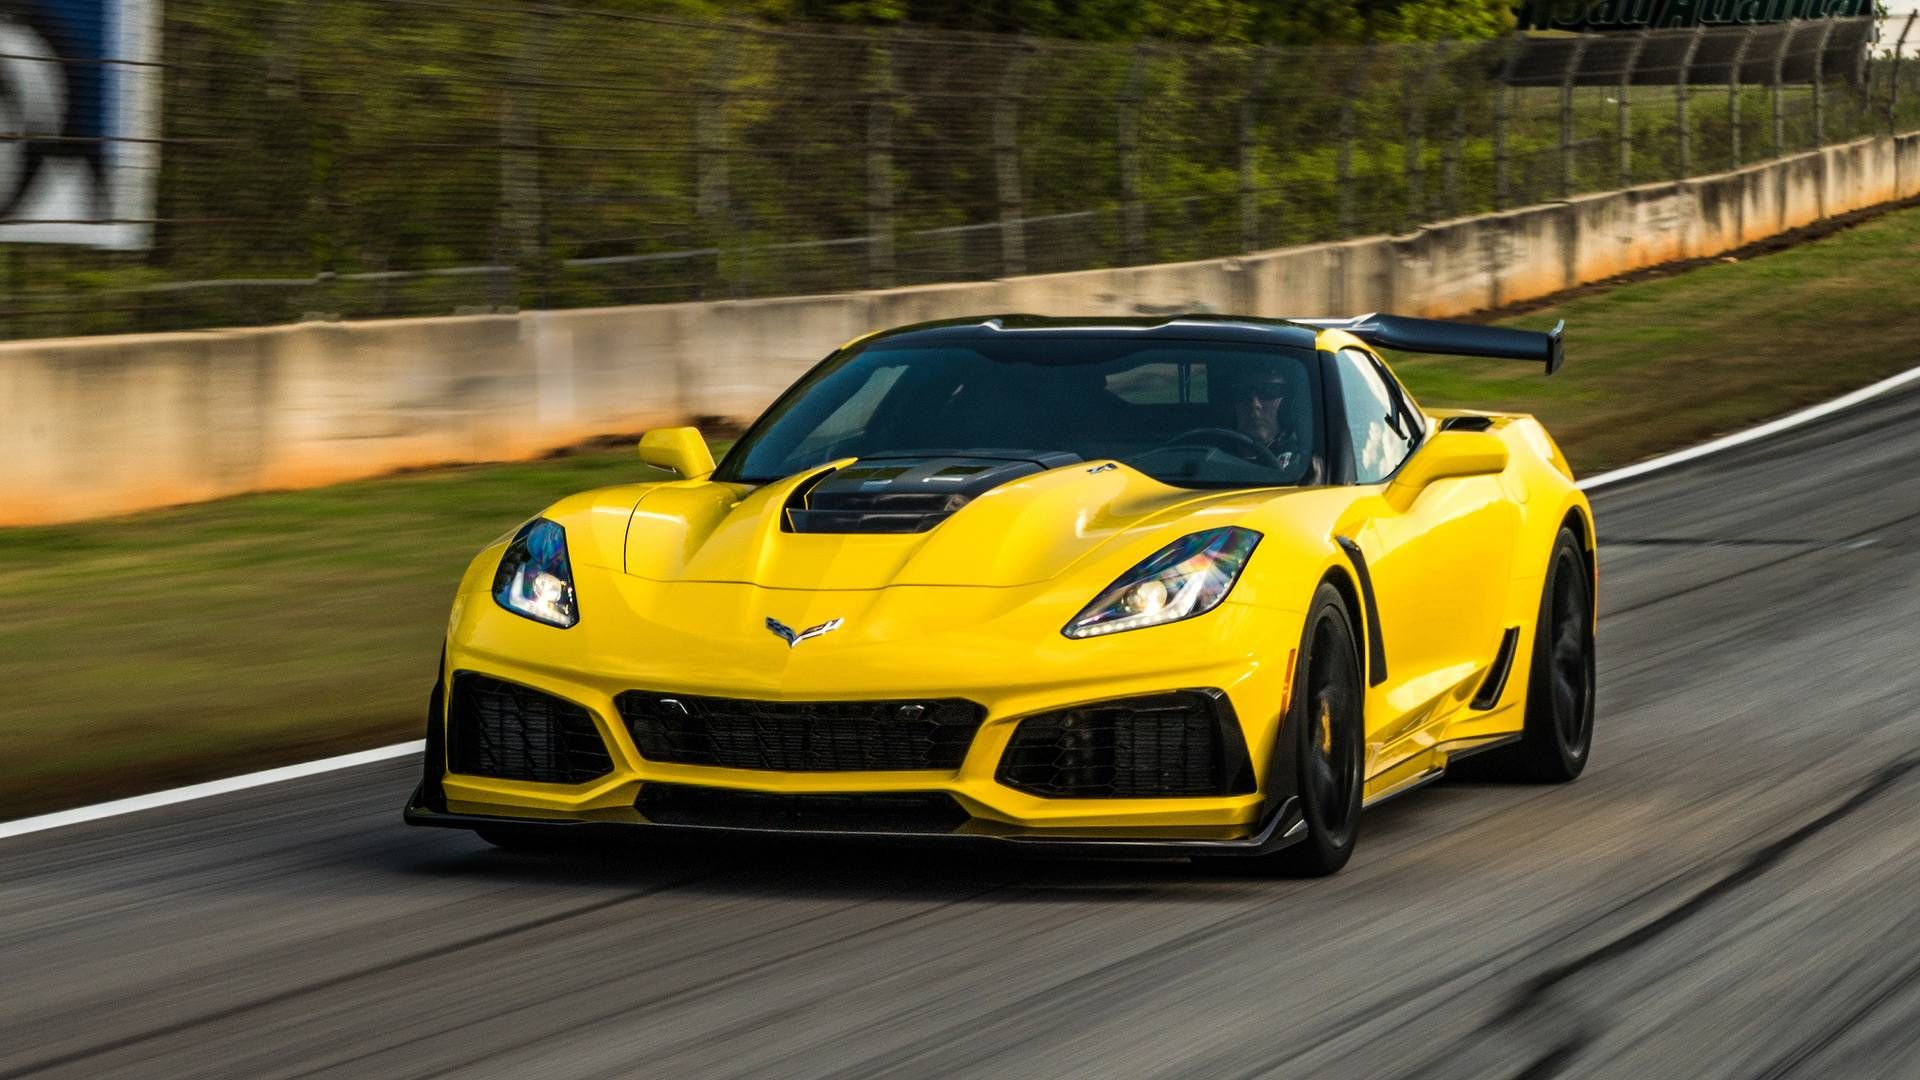 2019 Chevrolet Corvette Zr1 First Drive More Is Never Enough